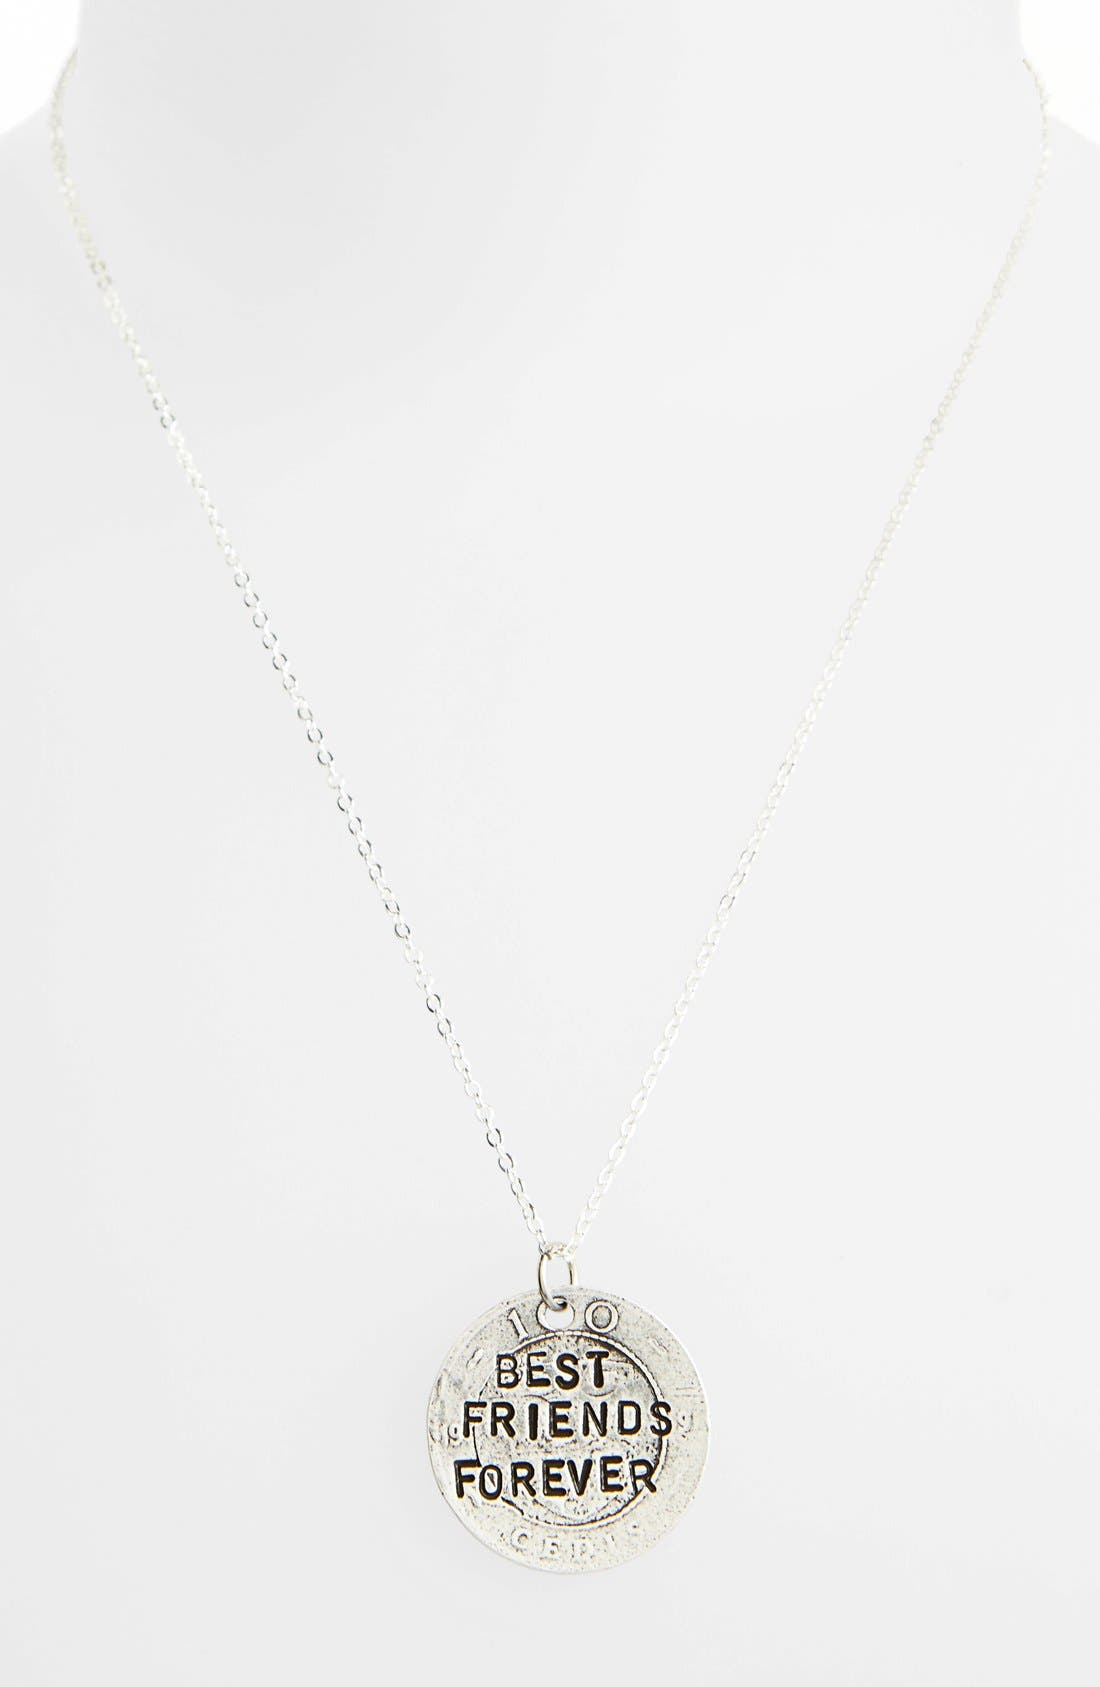 Alternate Image 1 Selected - Alisa Michelle Designs 'Best Friends Forever' Pendant Necklace